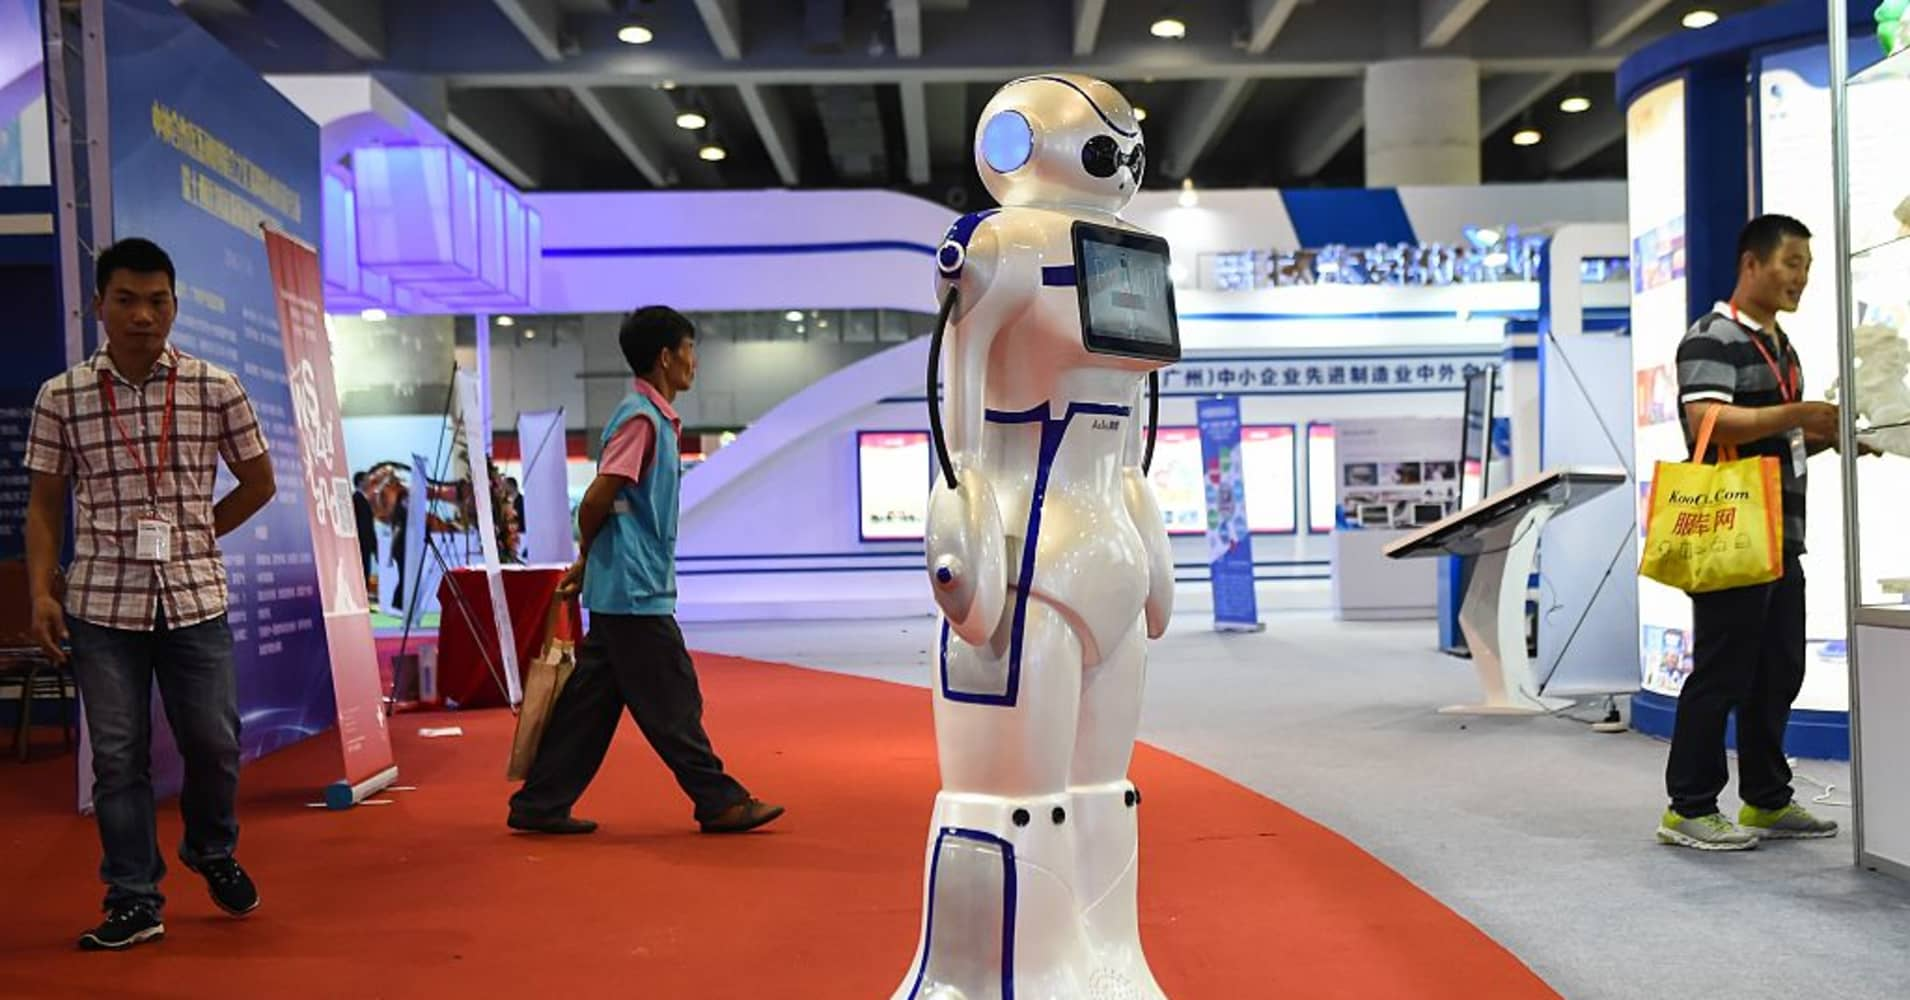 A guiding robot displayed during International Robotics Exhibition in China this year.